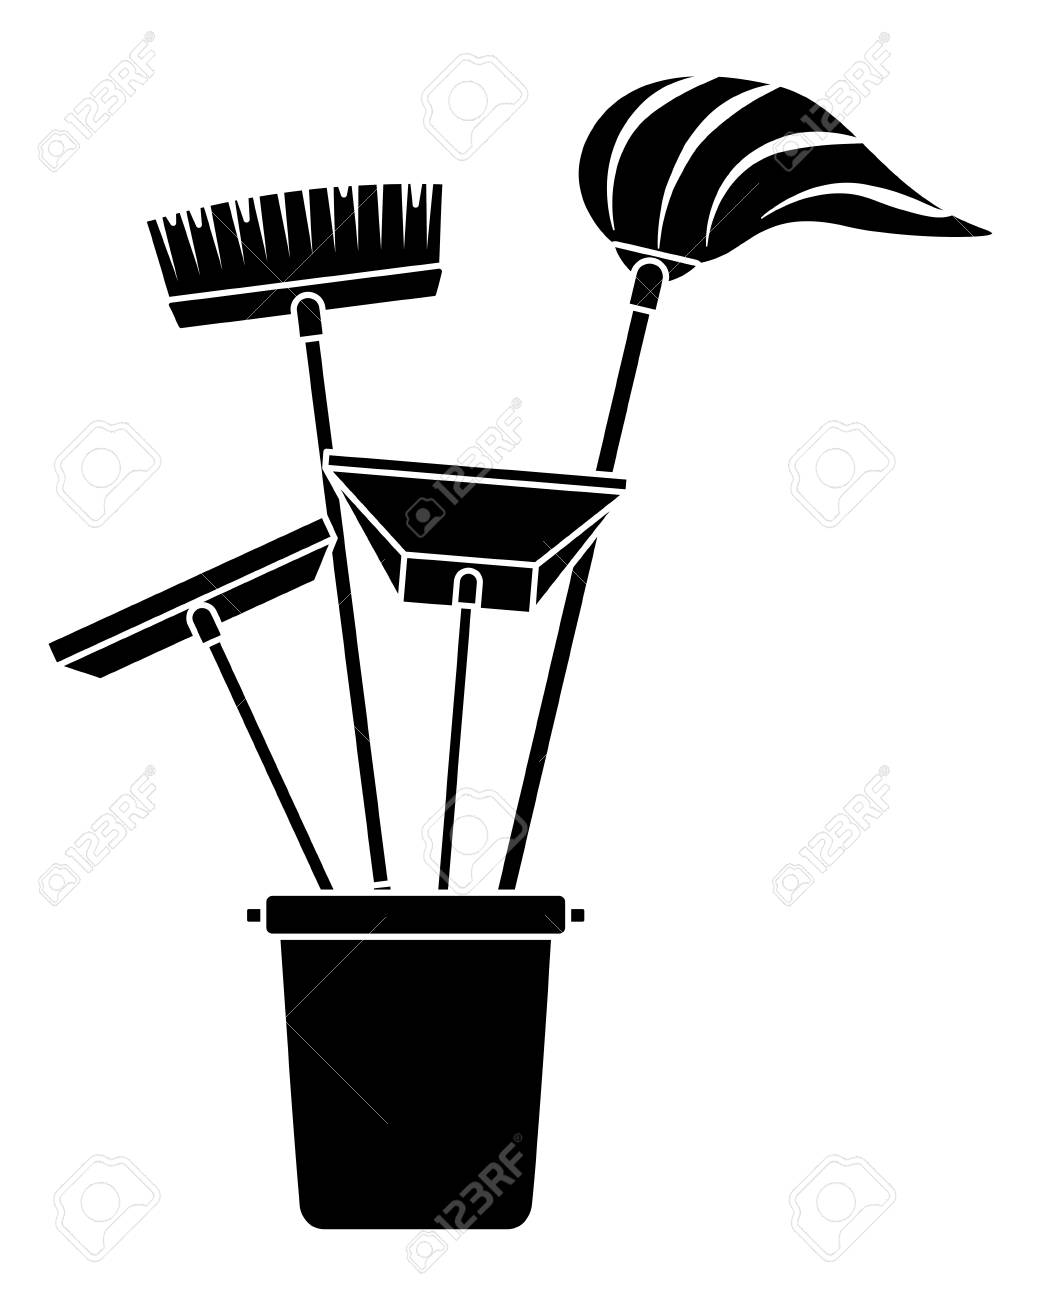 various cleaning objects in a plastic bucket for janitorial cleaning